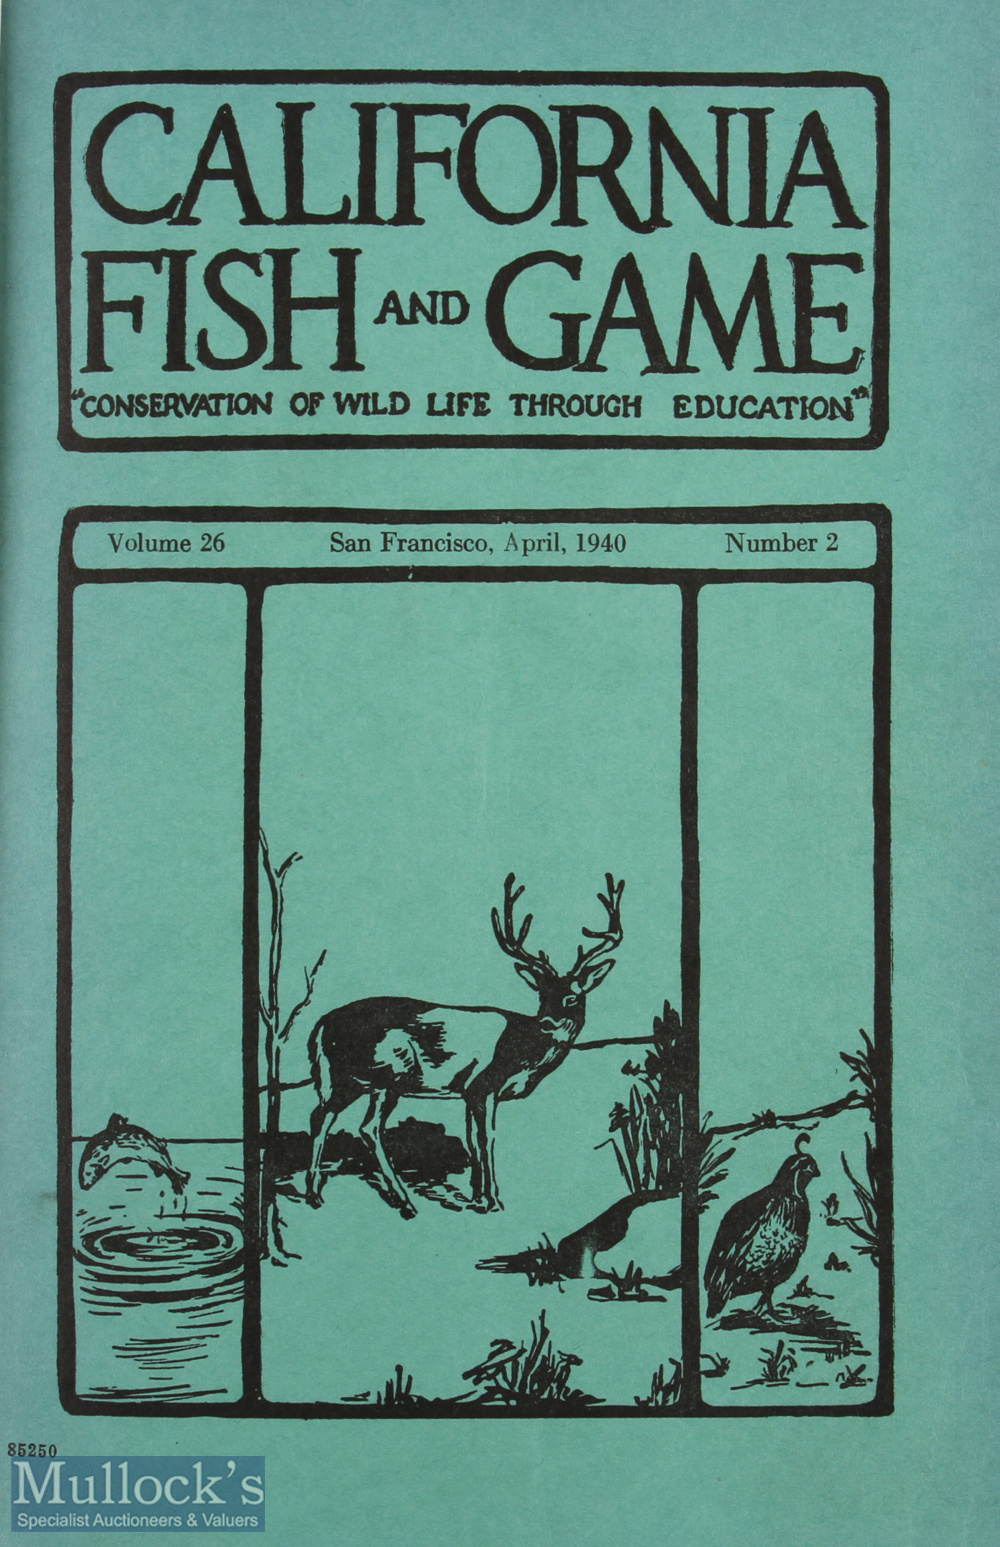 California Fish and Game 1940 Magazine volume 26, number 2, San Francisco April 1940, including - Image 2 of 2